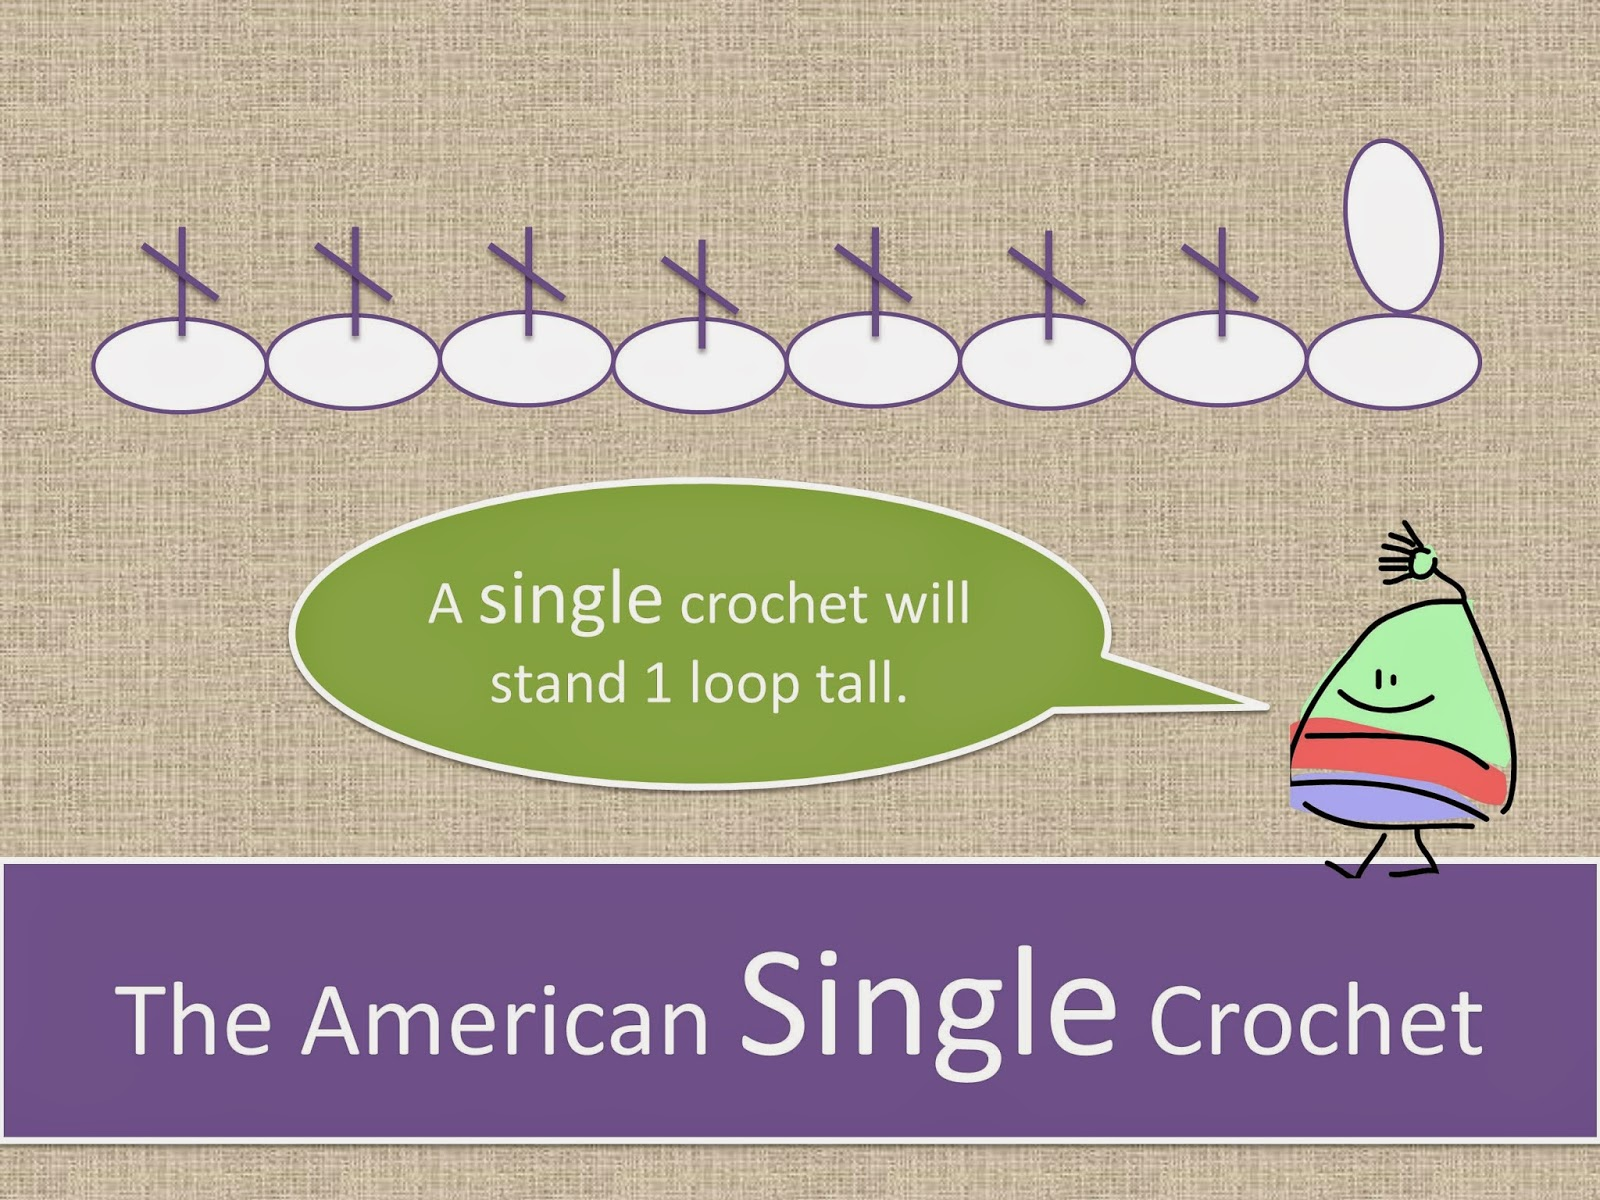 A stocking cap shows the crochet symbol for a single crochet and reminds us that a single crochet stands 1 loop tall.